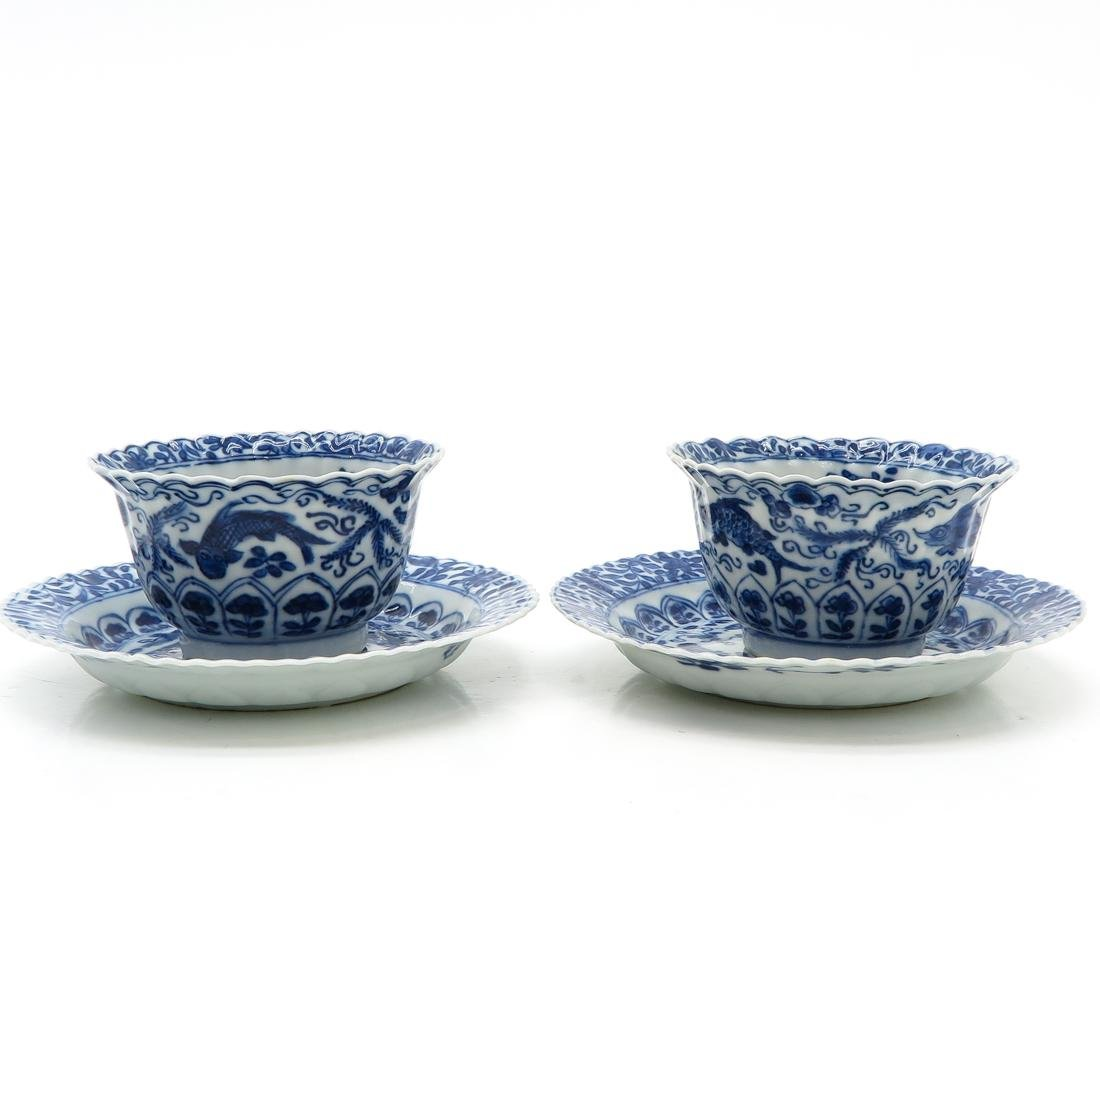 Lot of 2 Cups and Saucers - 2